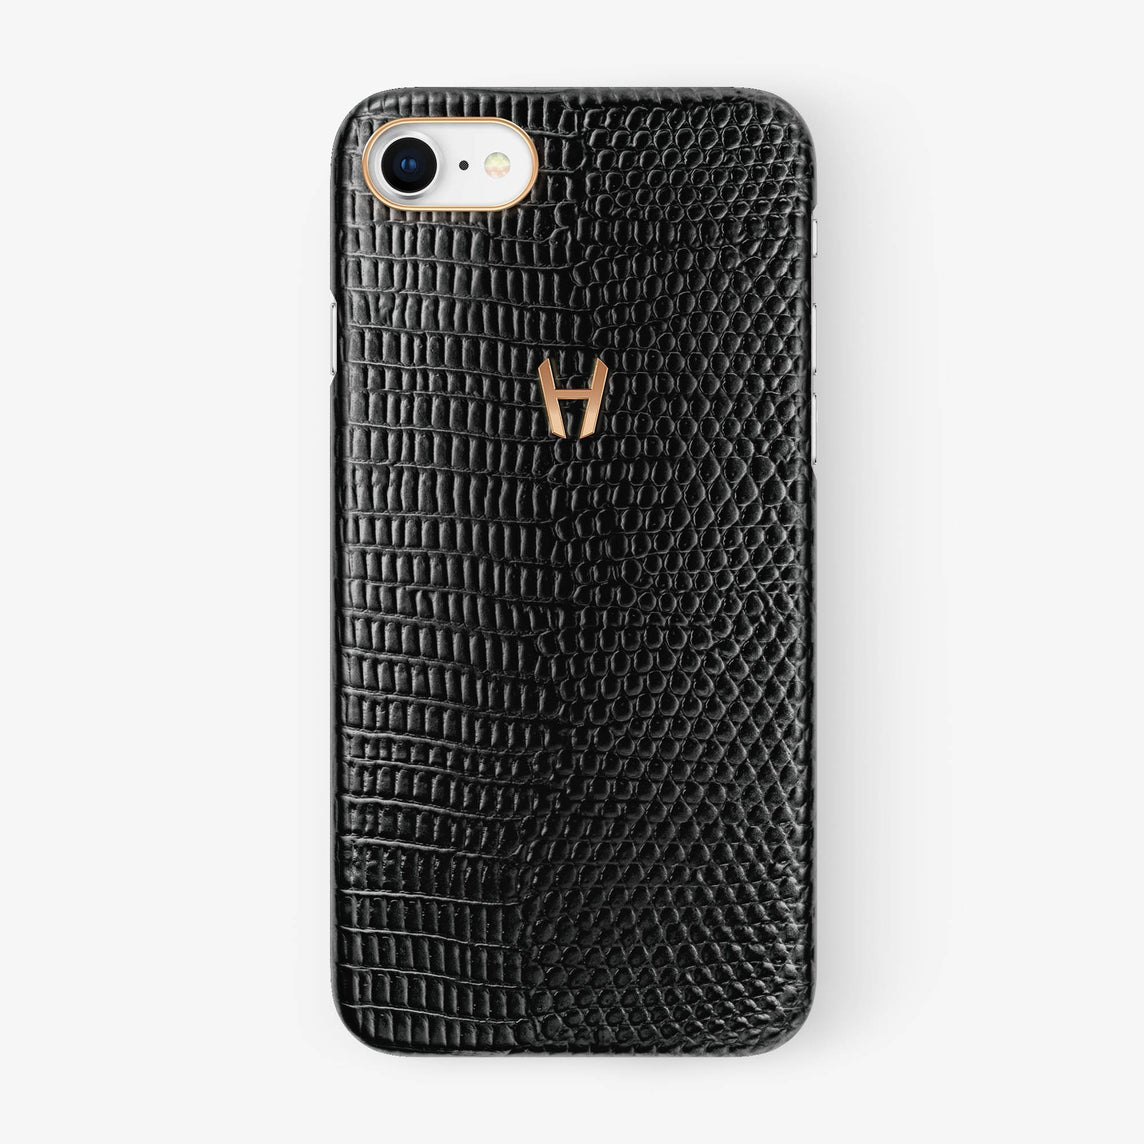 Black Lizard iPhone Case for iPhone 7/8 finishing rose gold - Hadoro Luxury Cases